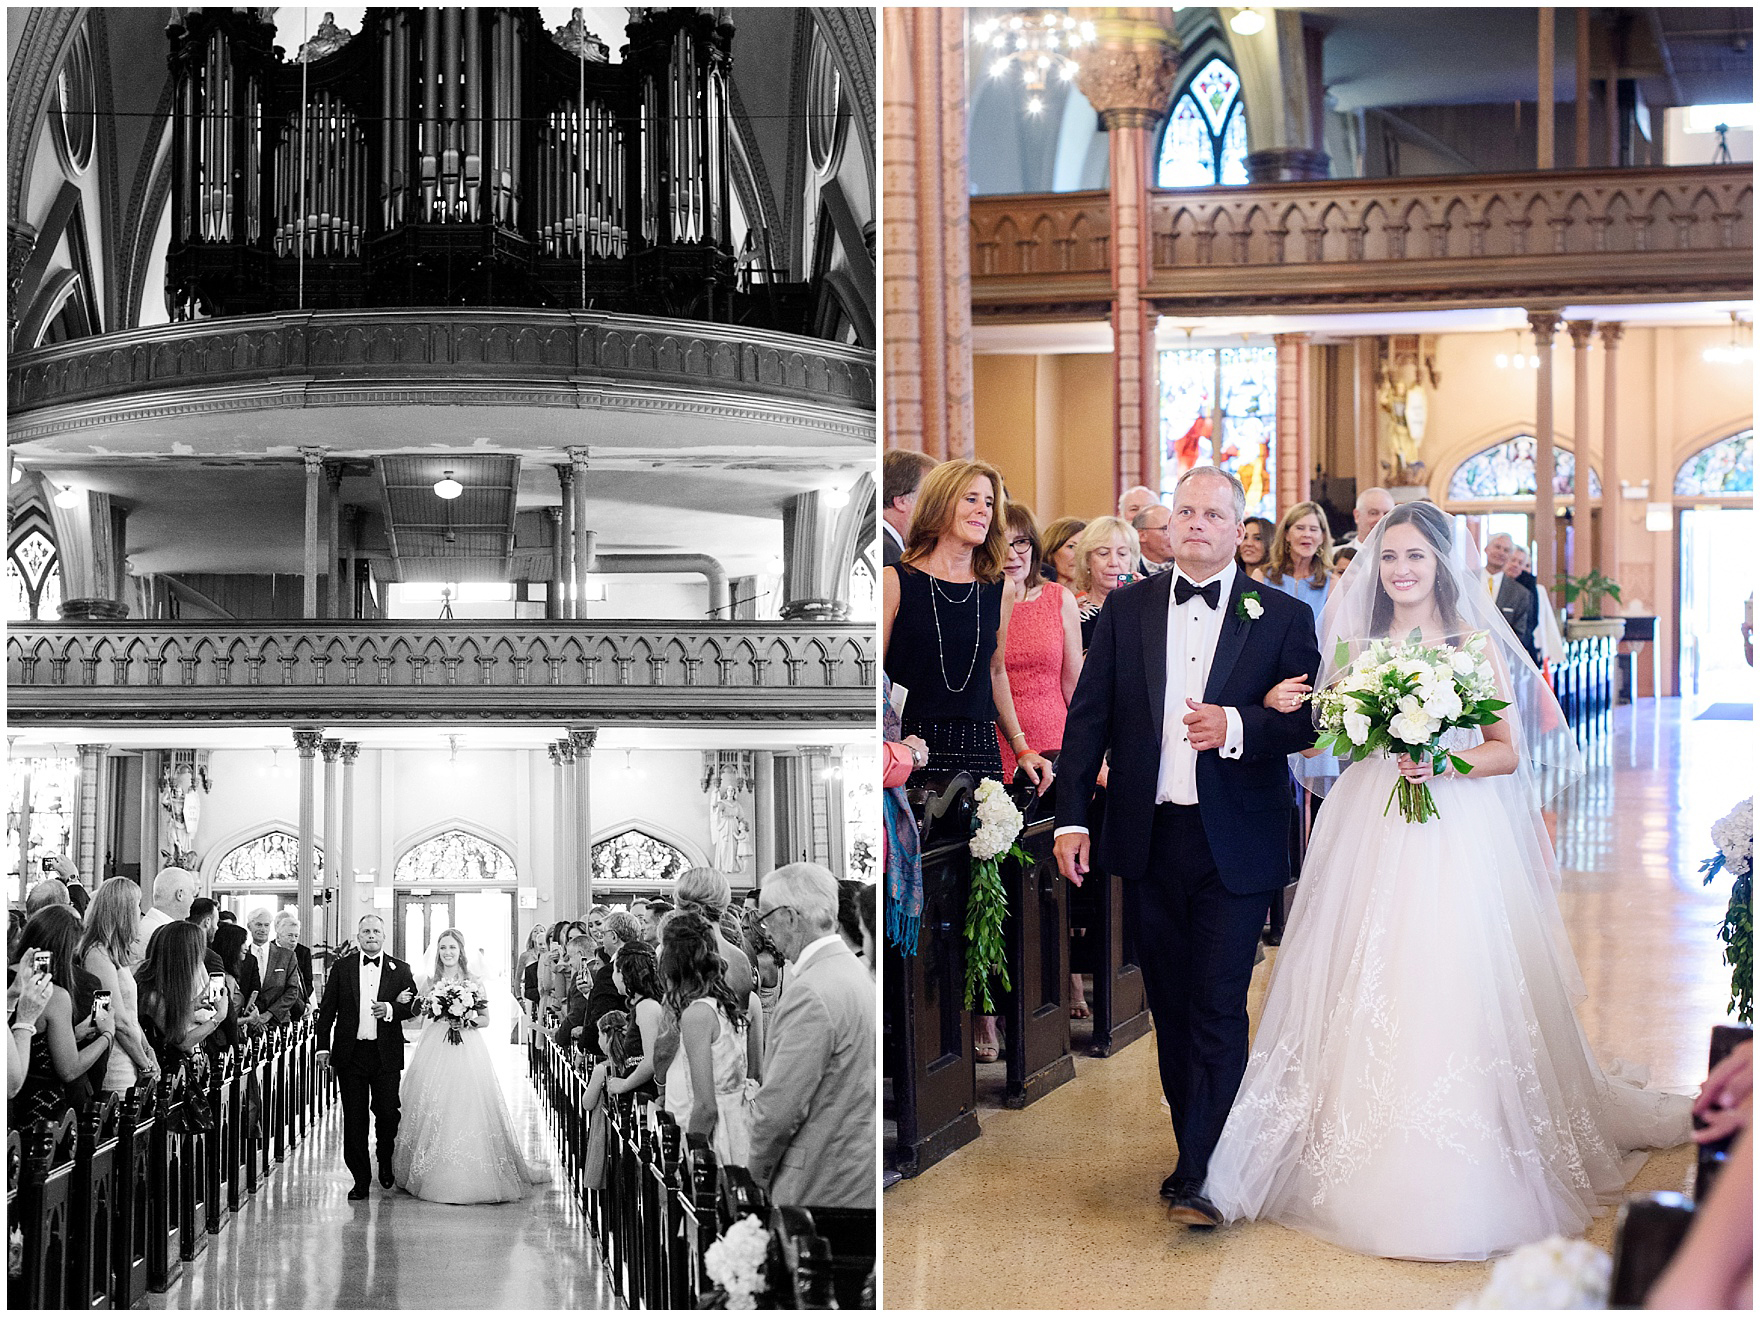 A bride and her father walk down the aisle of Chicago's historic Holy Family Church, site of the ceremony for a Butterfield Country Club wedding.